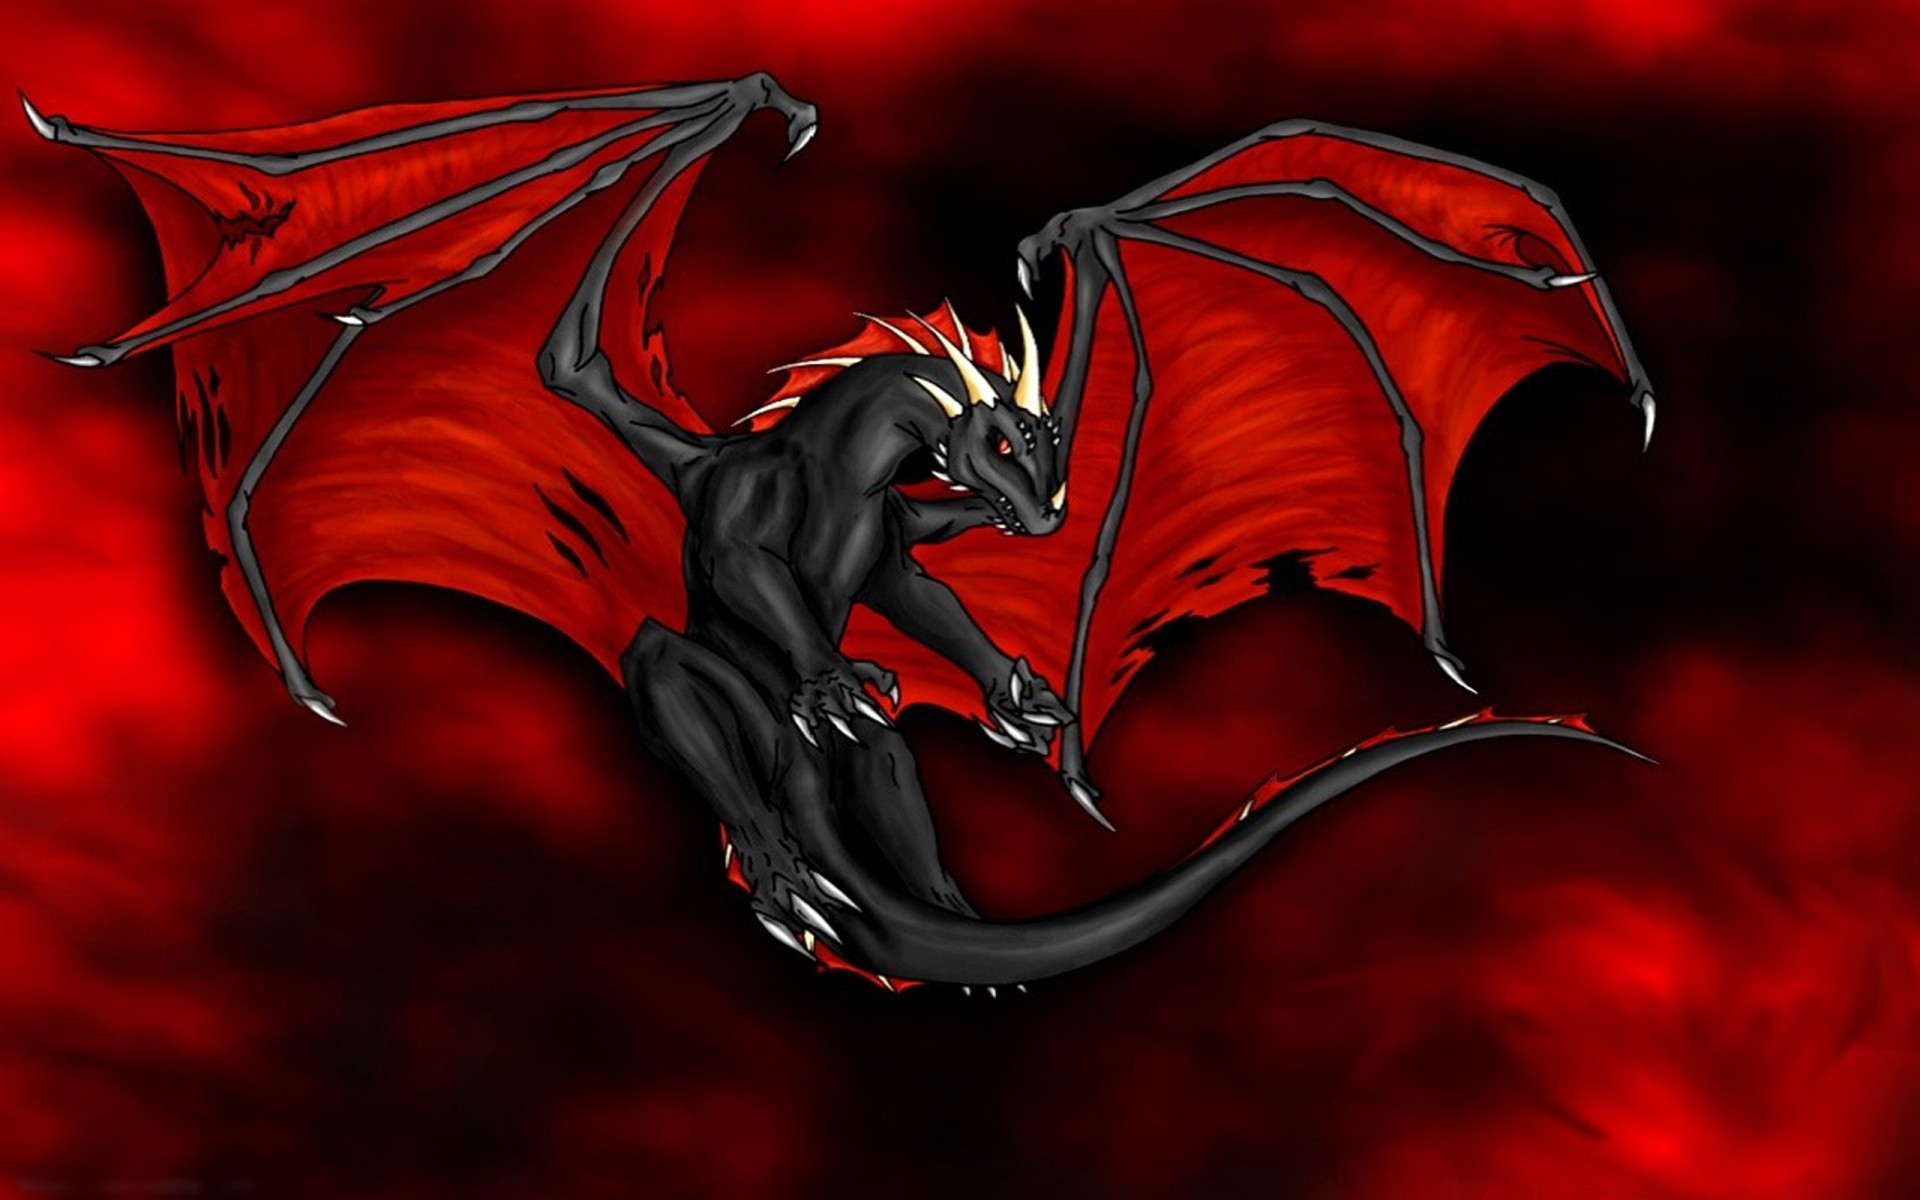 1920x1200 0 1920x1080 Dragon Wallpapers 1920x1080  Dragon Wallpapers HD  Backgrounds, Images, Pics, Photos Free